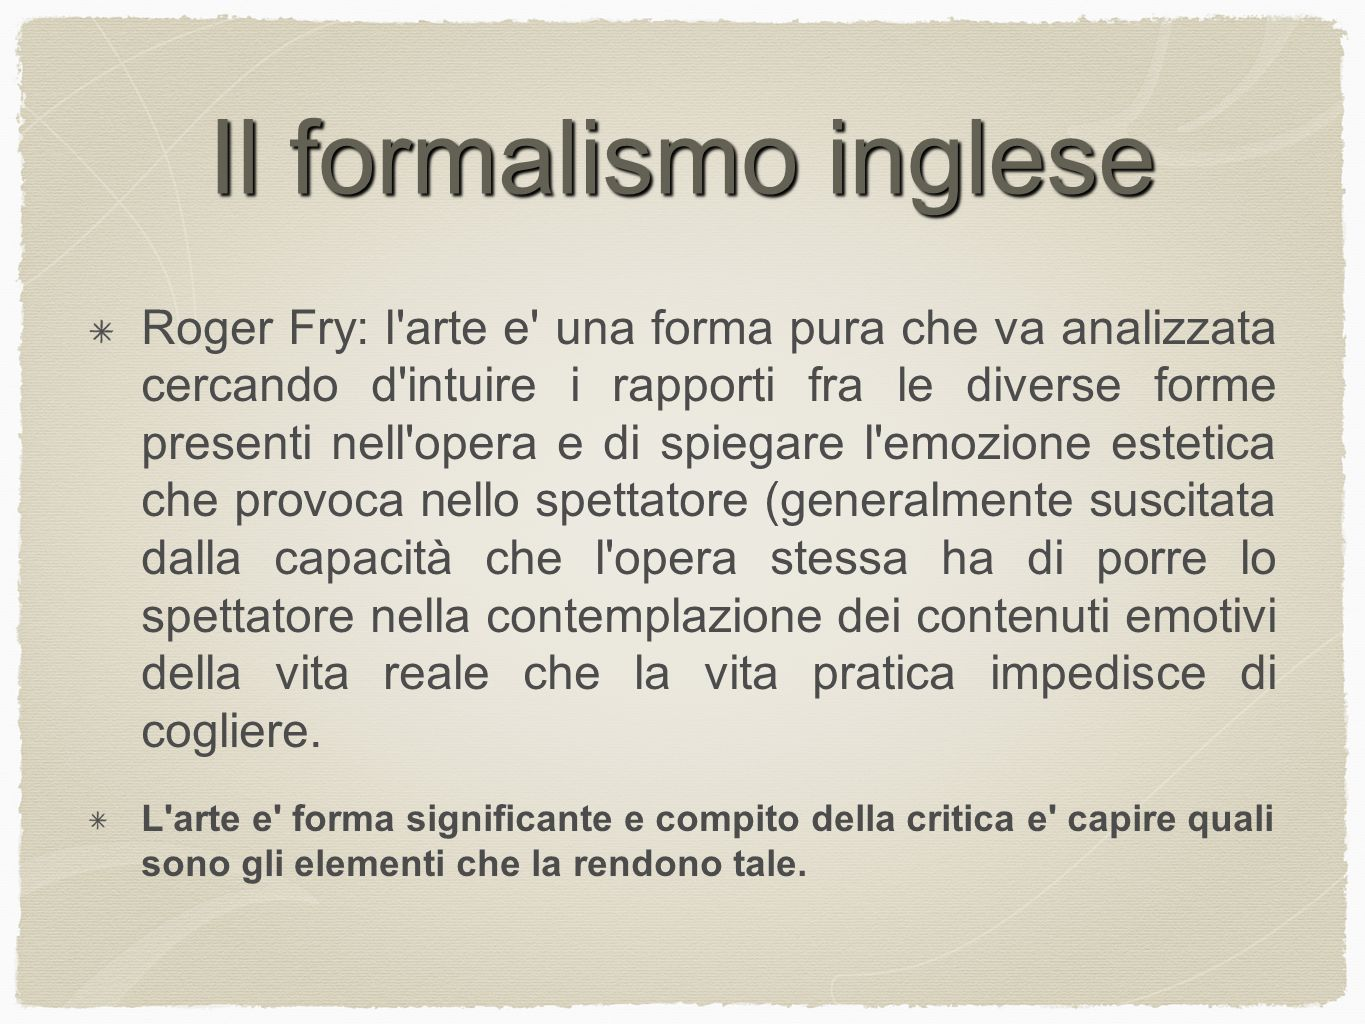 Il formalismo inglese